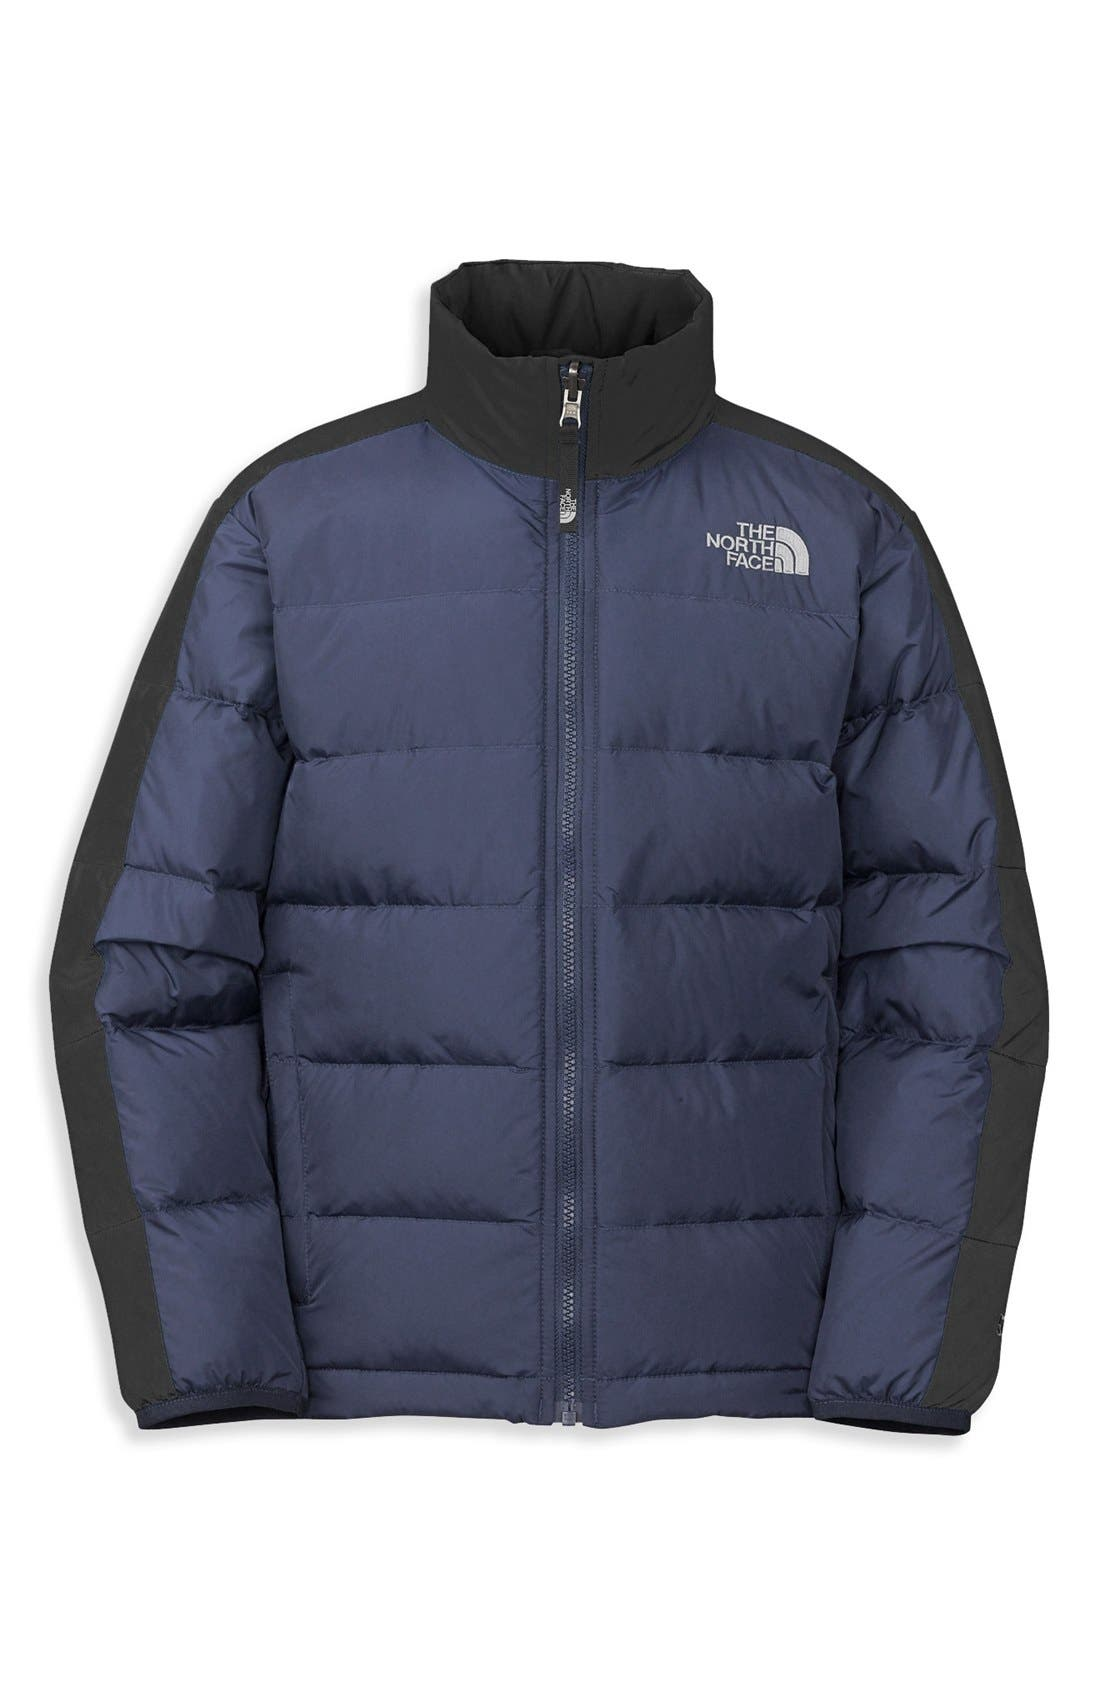 Main Image - The North Face 'Aconcagua' Down Jacket (Big Boys)